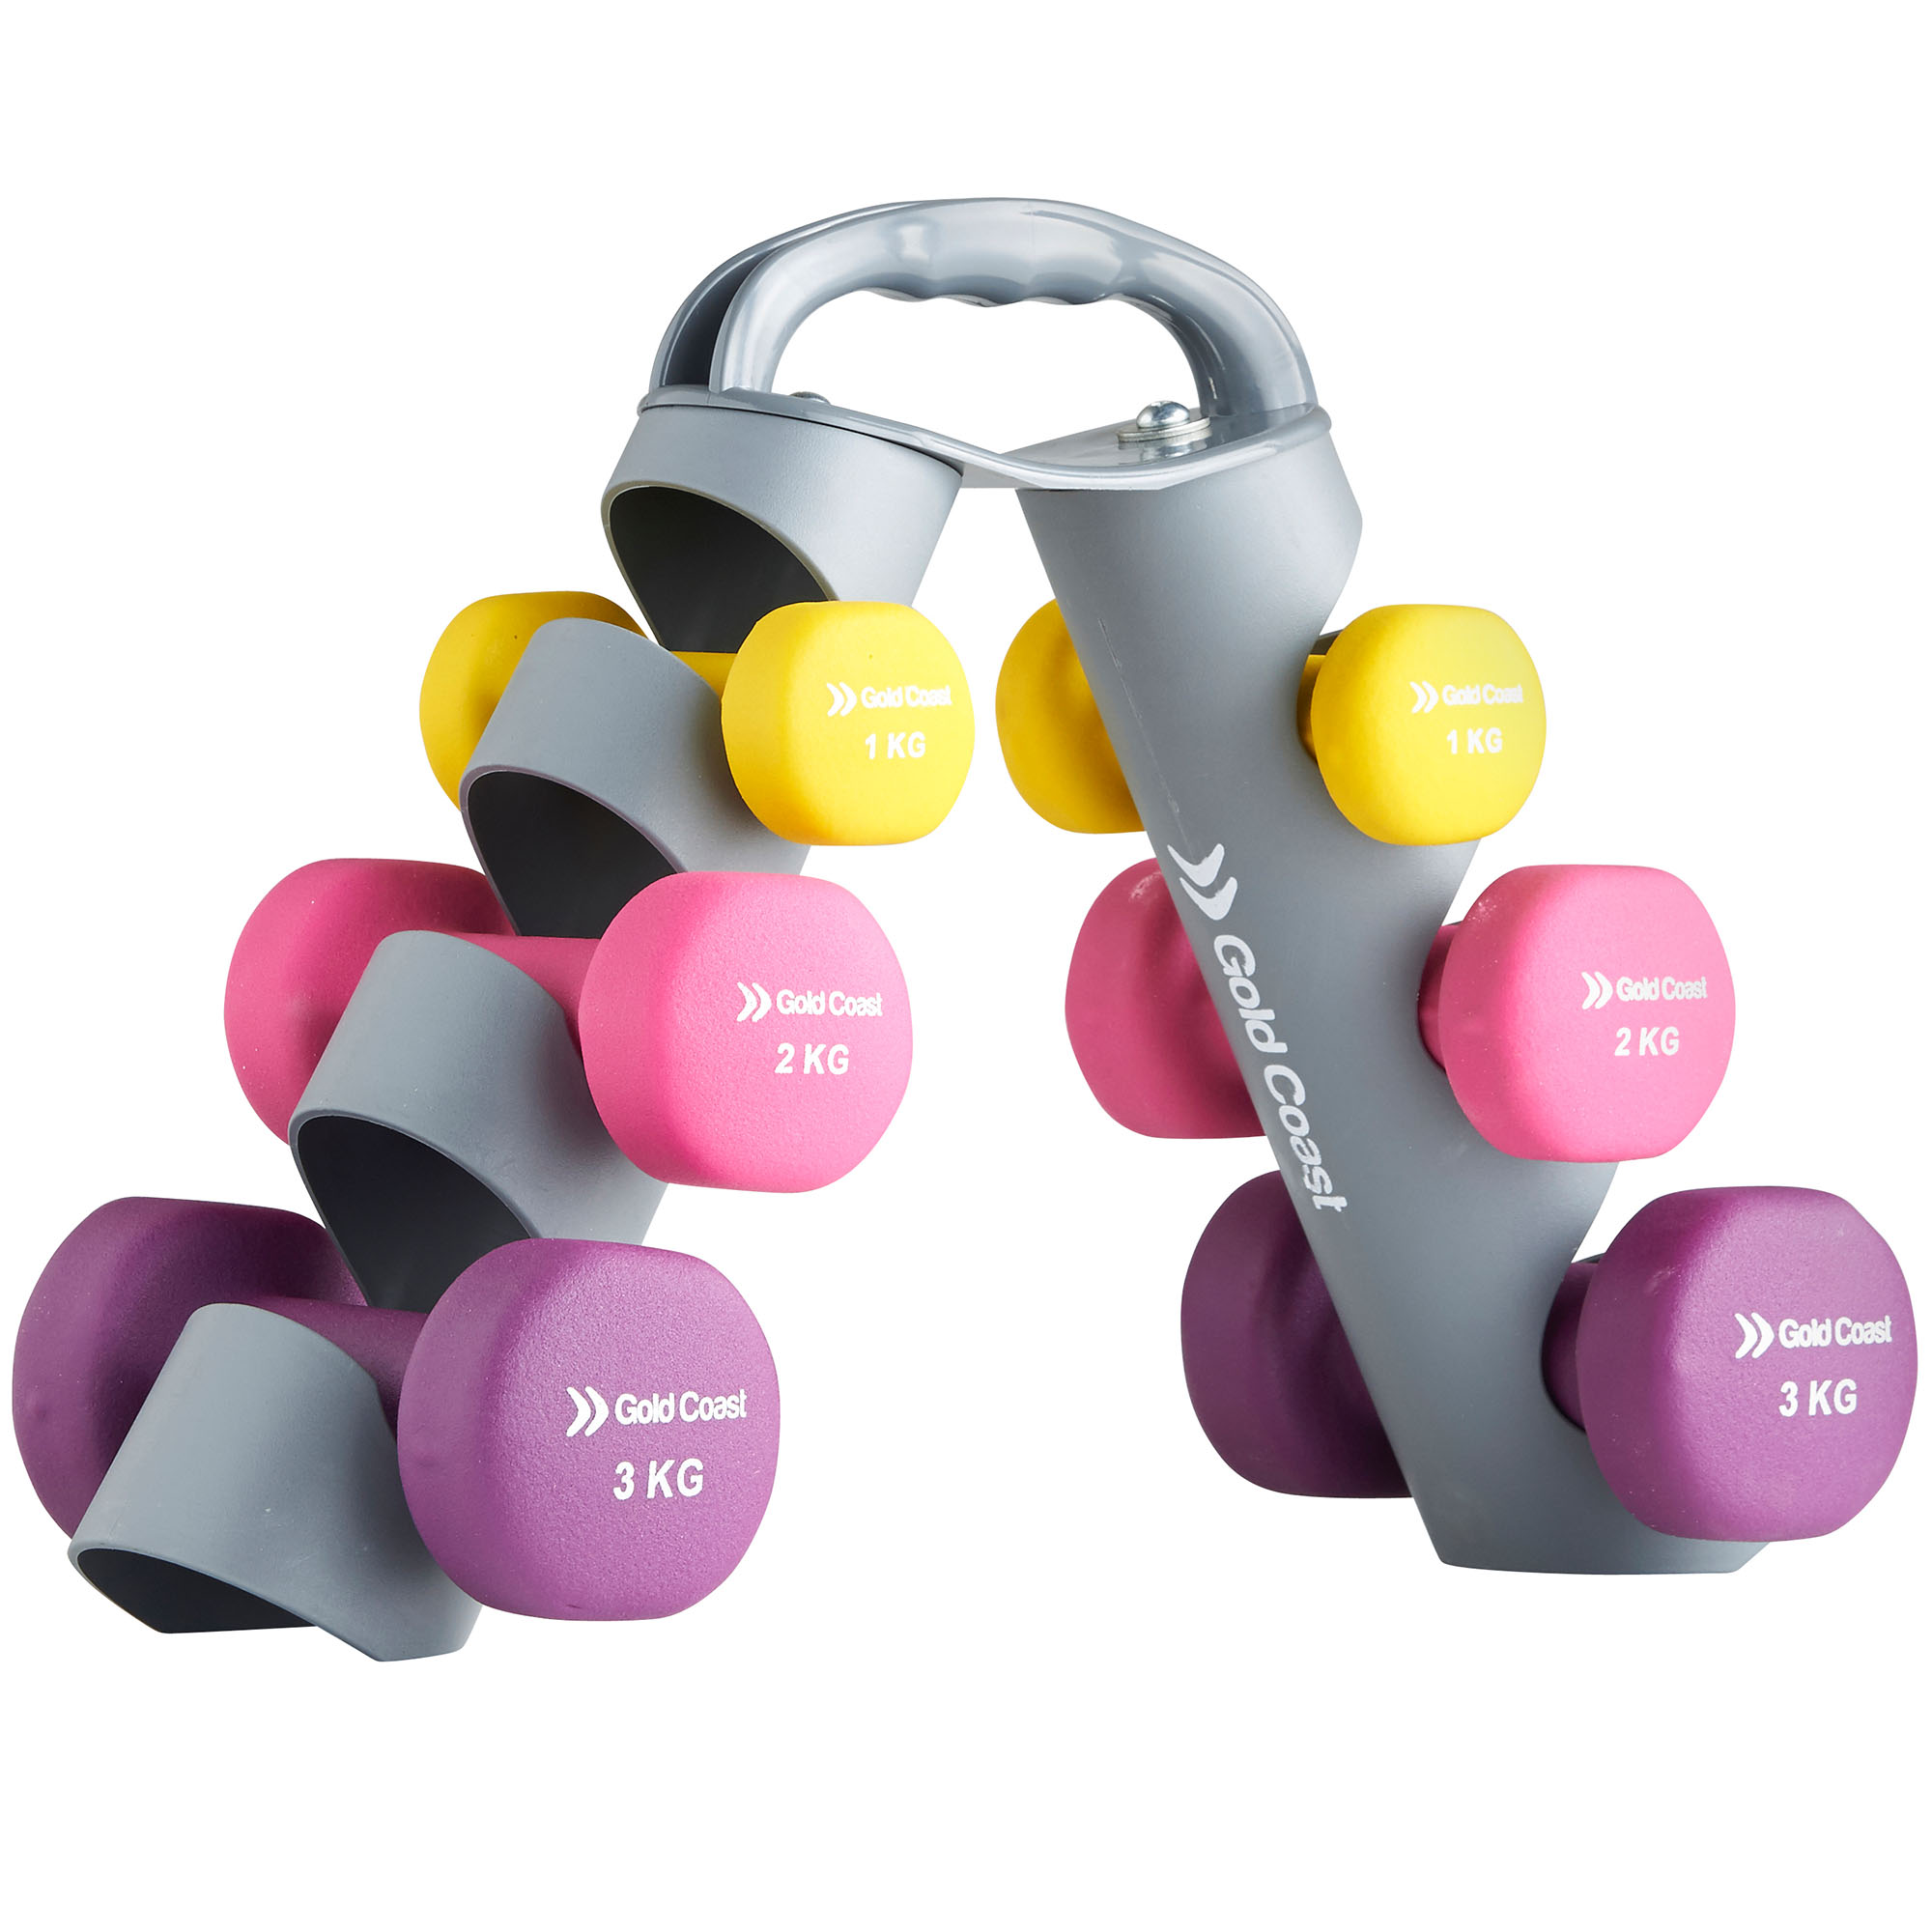 9a4b6c076e2 Sentinel Gold Coast 12kg Dumbbell Hand Weights Set Weight Training Gym  Fitness Workout